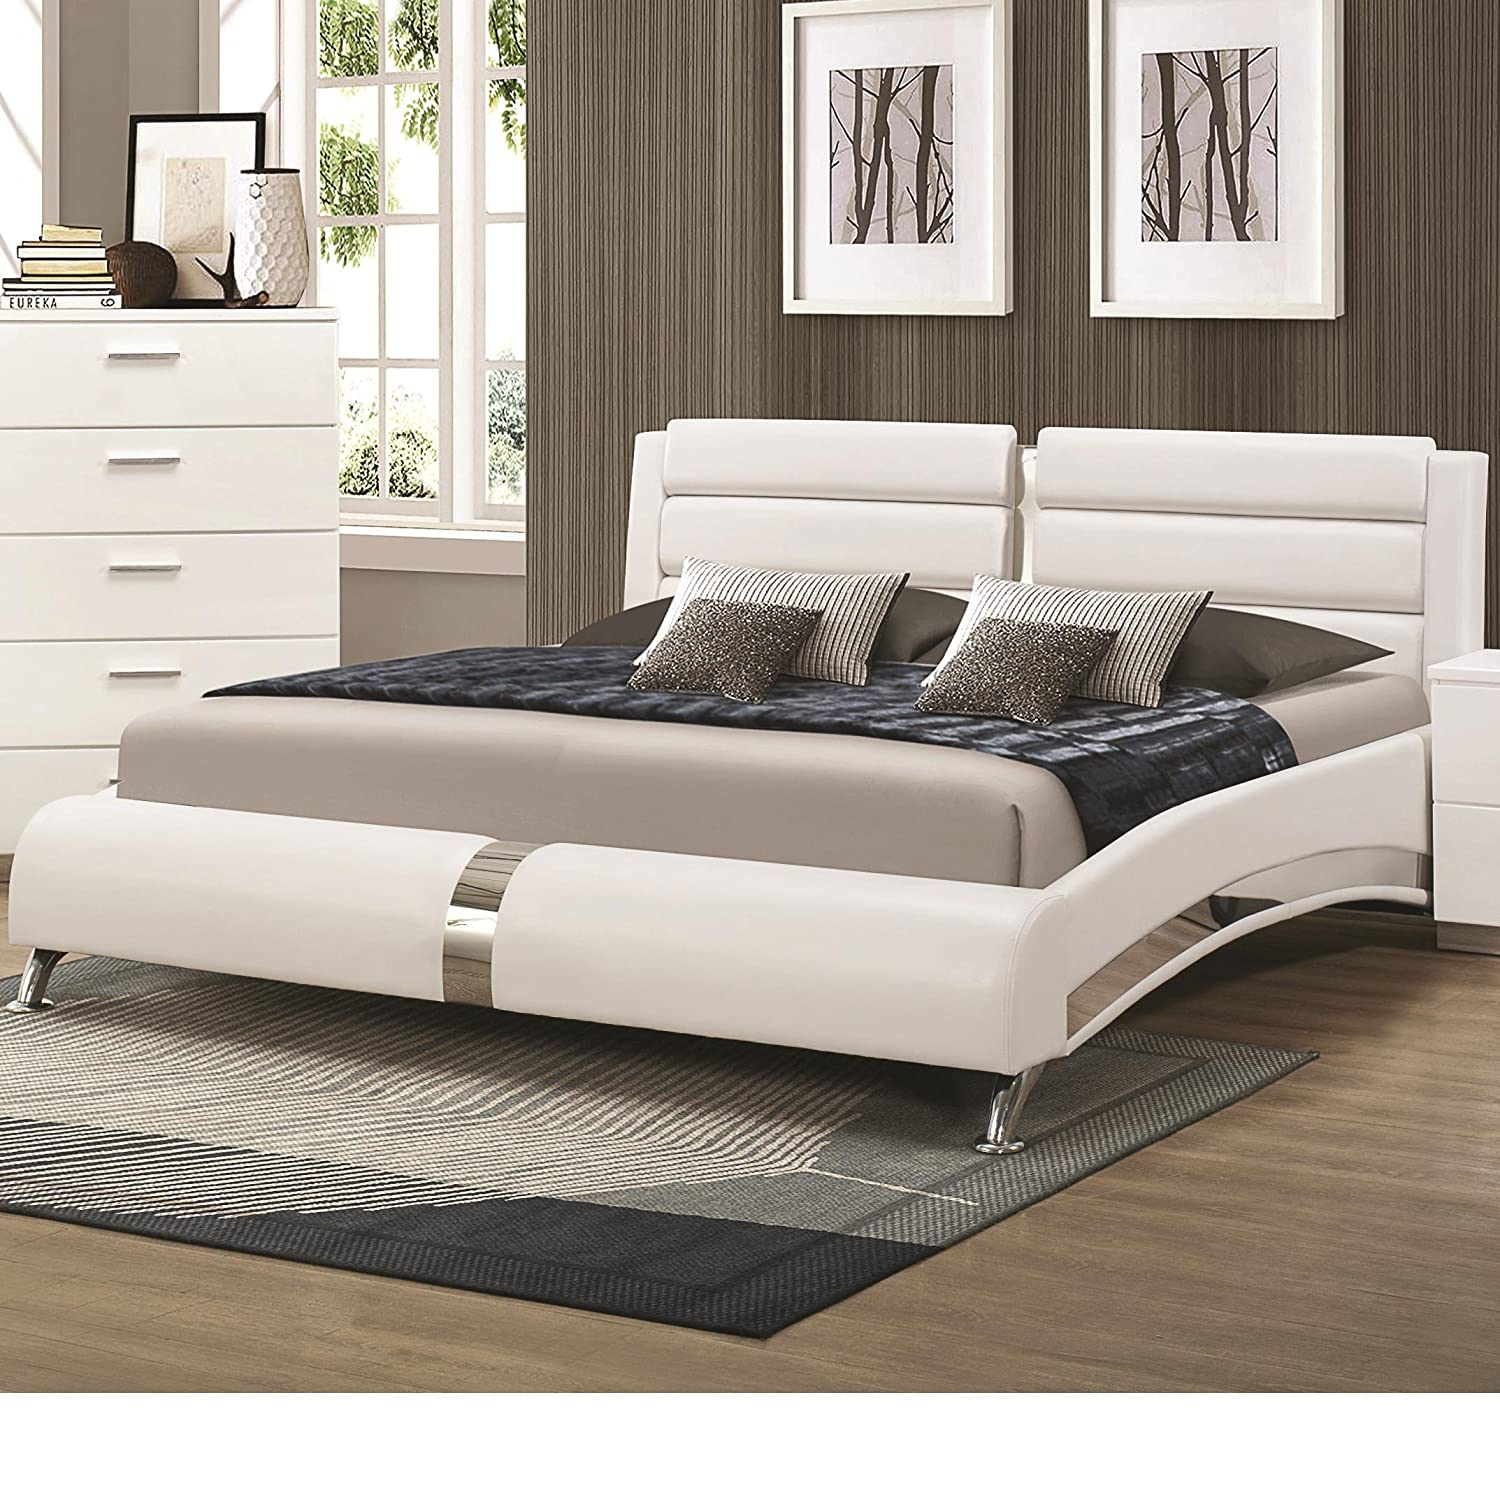 amazoncom coaster 300345kw white california king size bed with metallic accents kitchen u0026 dining